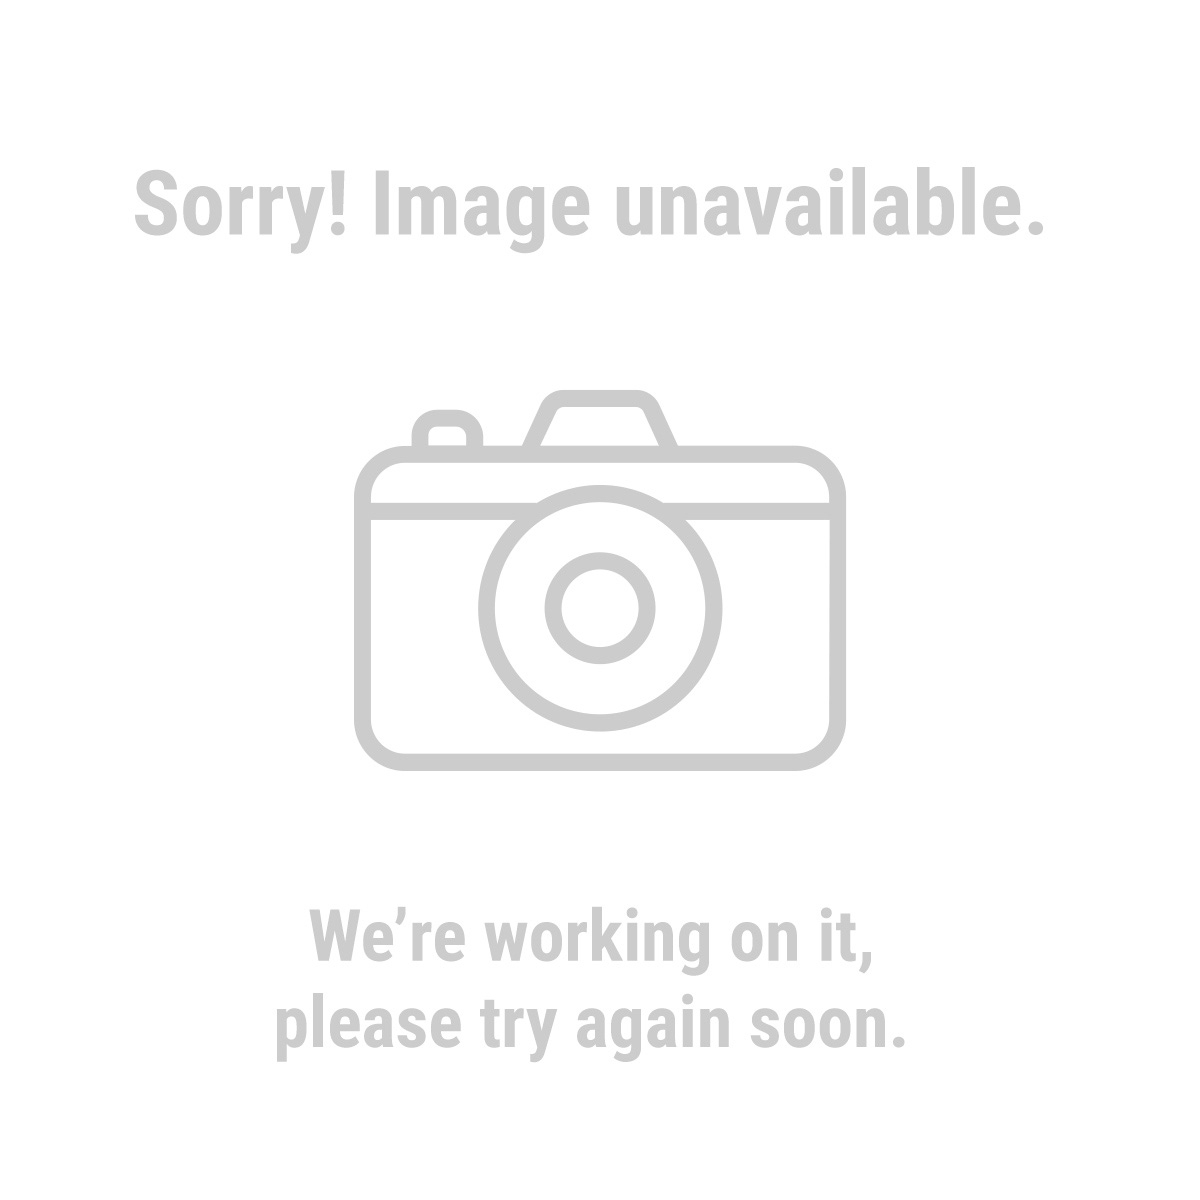 Predator Engines 69735 346cc OHV Horizontal Shaft Gas Engine - Certified for California